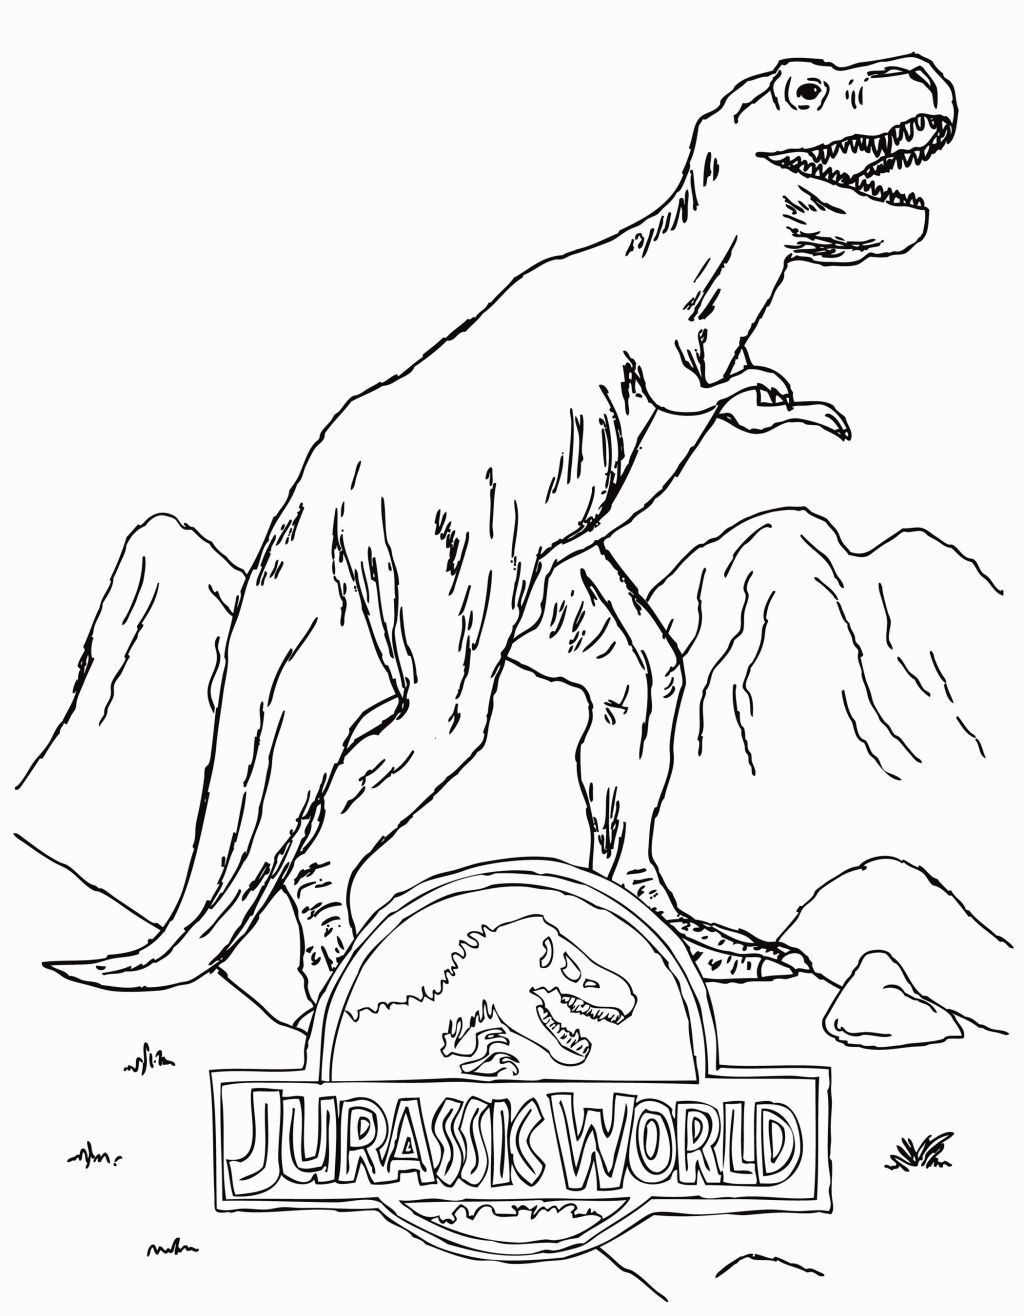 Jurassic World Coloring Sheets Dinosaur Coloring Pages Coloring Pages Inspirational Dinosaur Coloring